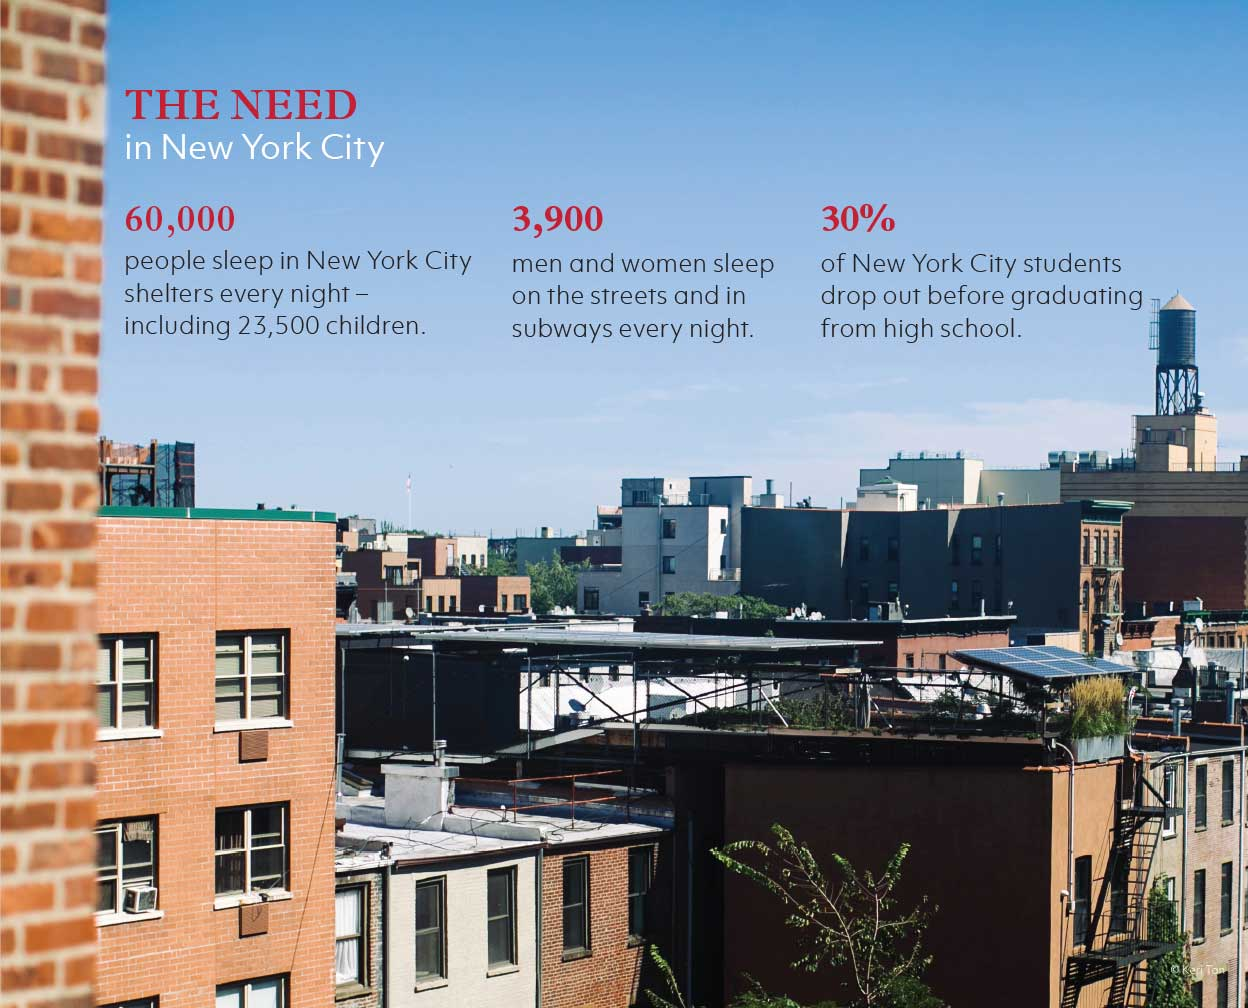 The Bowery Mission 2016 Annual Report - The Need in New York City